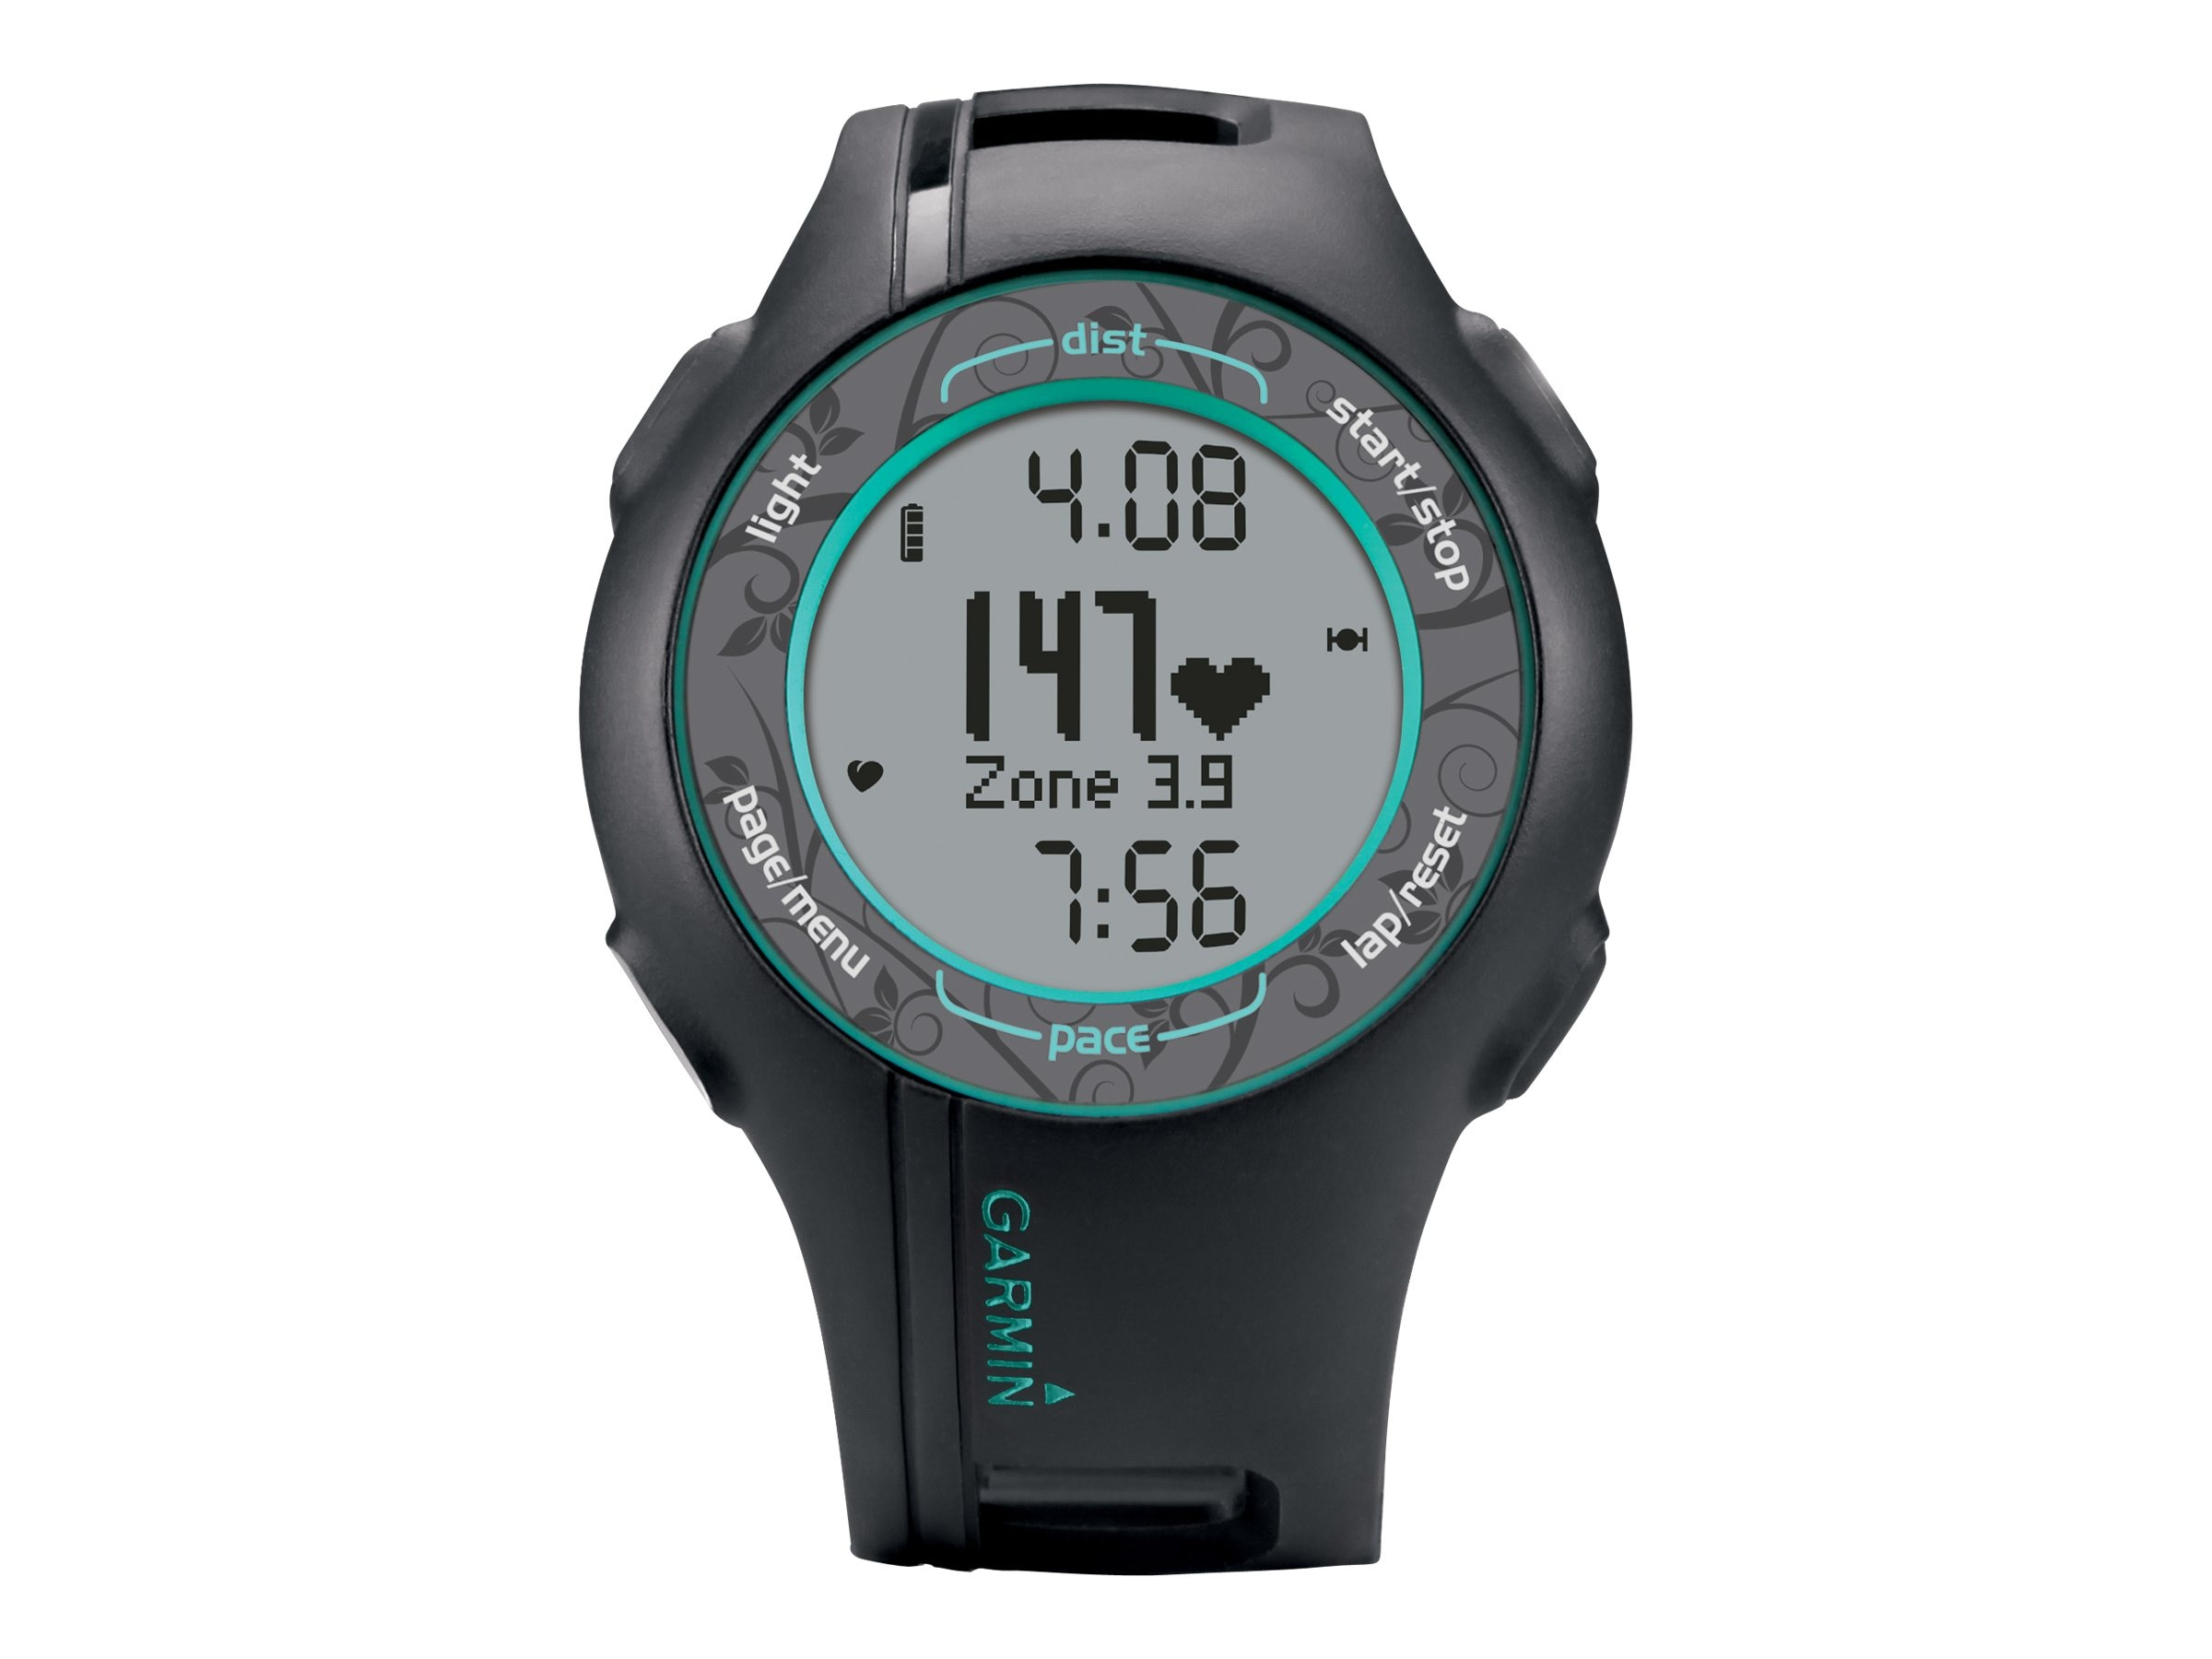 Garmin Forerunner 210 With Heart Rate Monitor, Teal